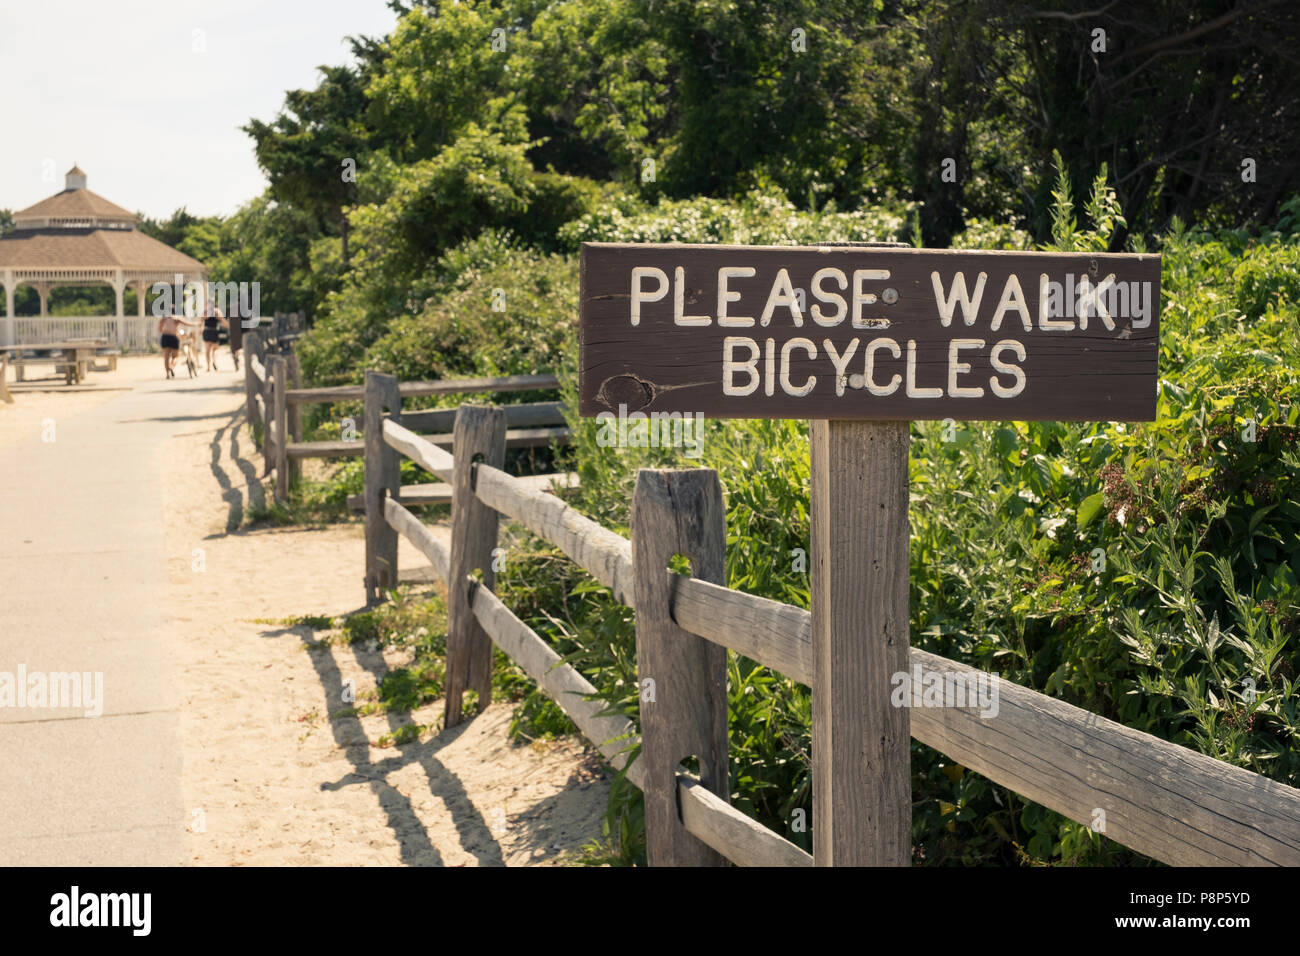 Signage to please walk bicycles on pedestrian path at a park Stock Photo